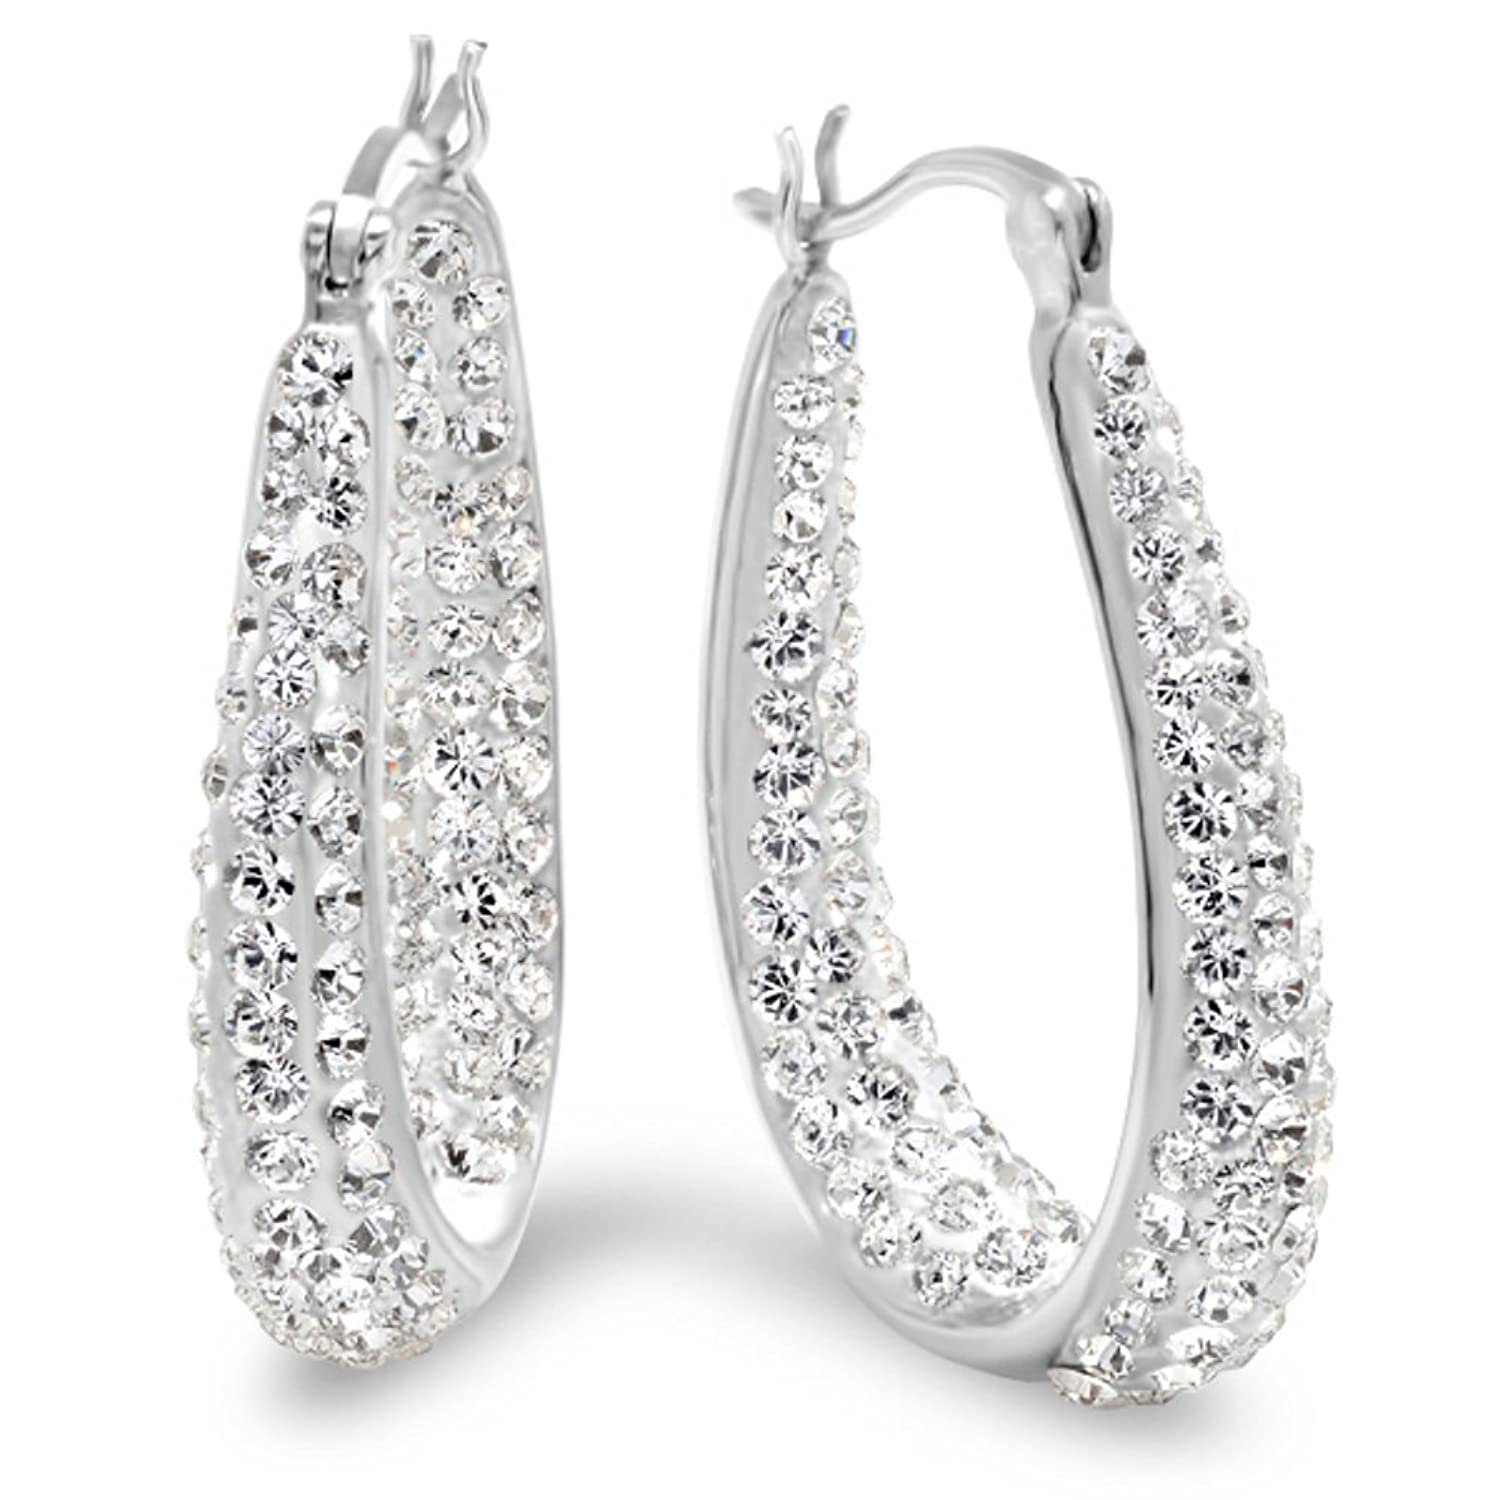 Amazon.com: Sterling Silver Hoop Earrings made with Swarovski ...